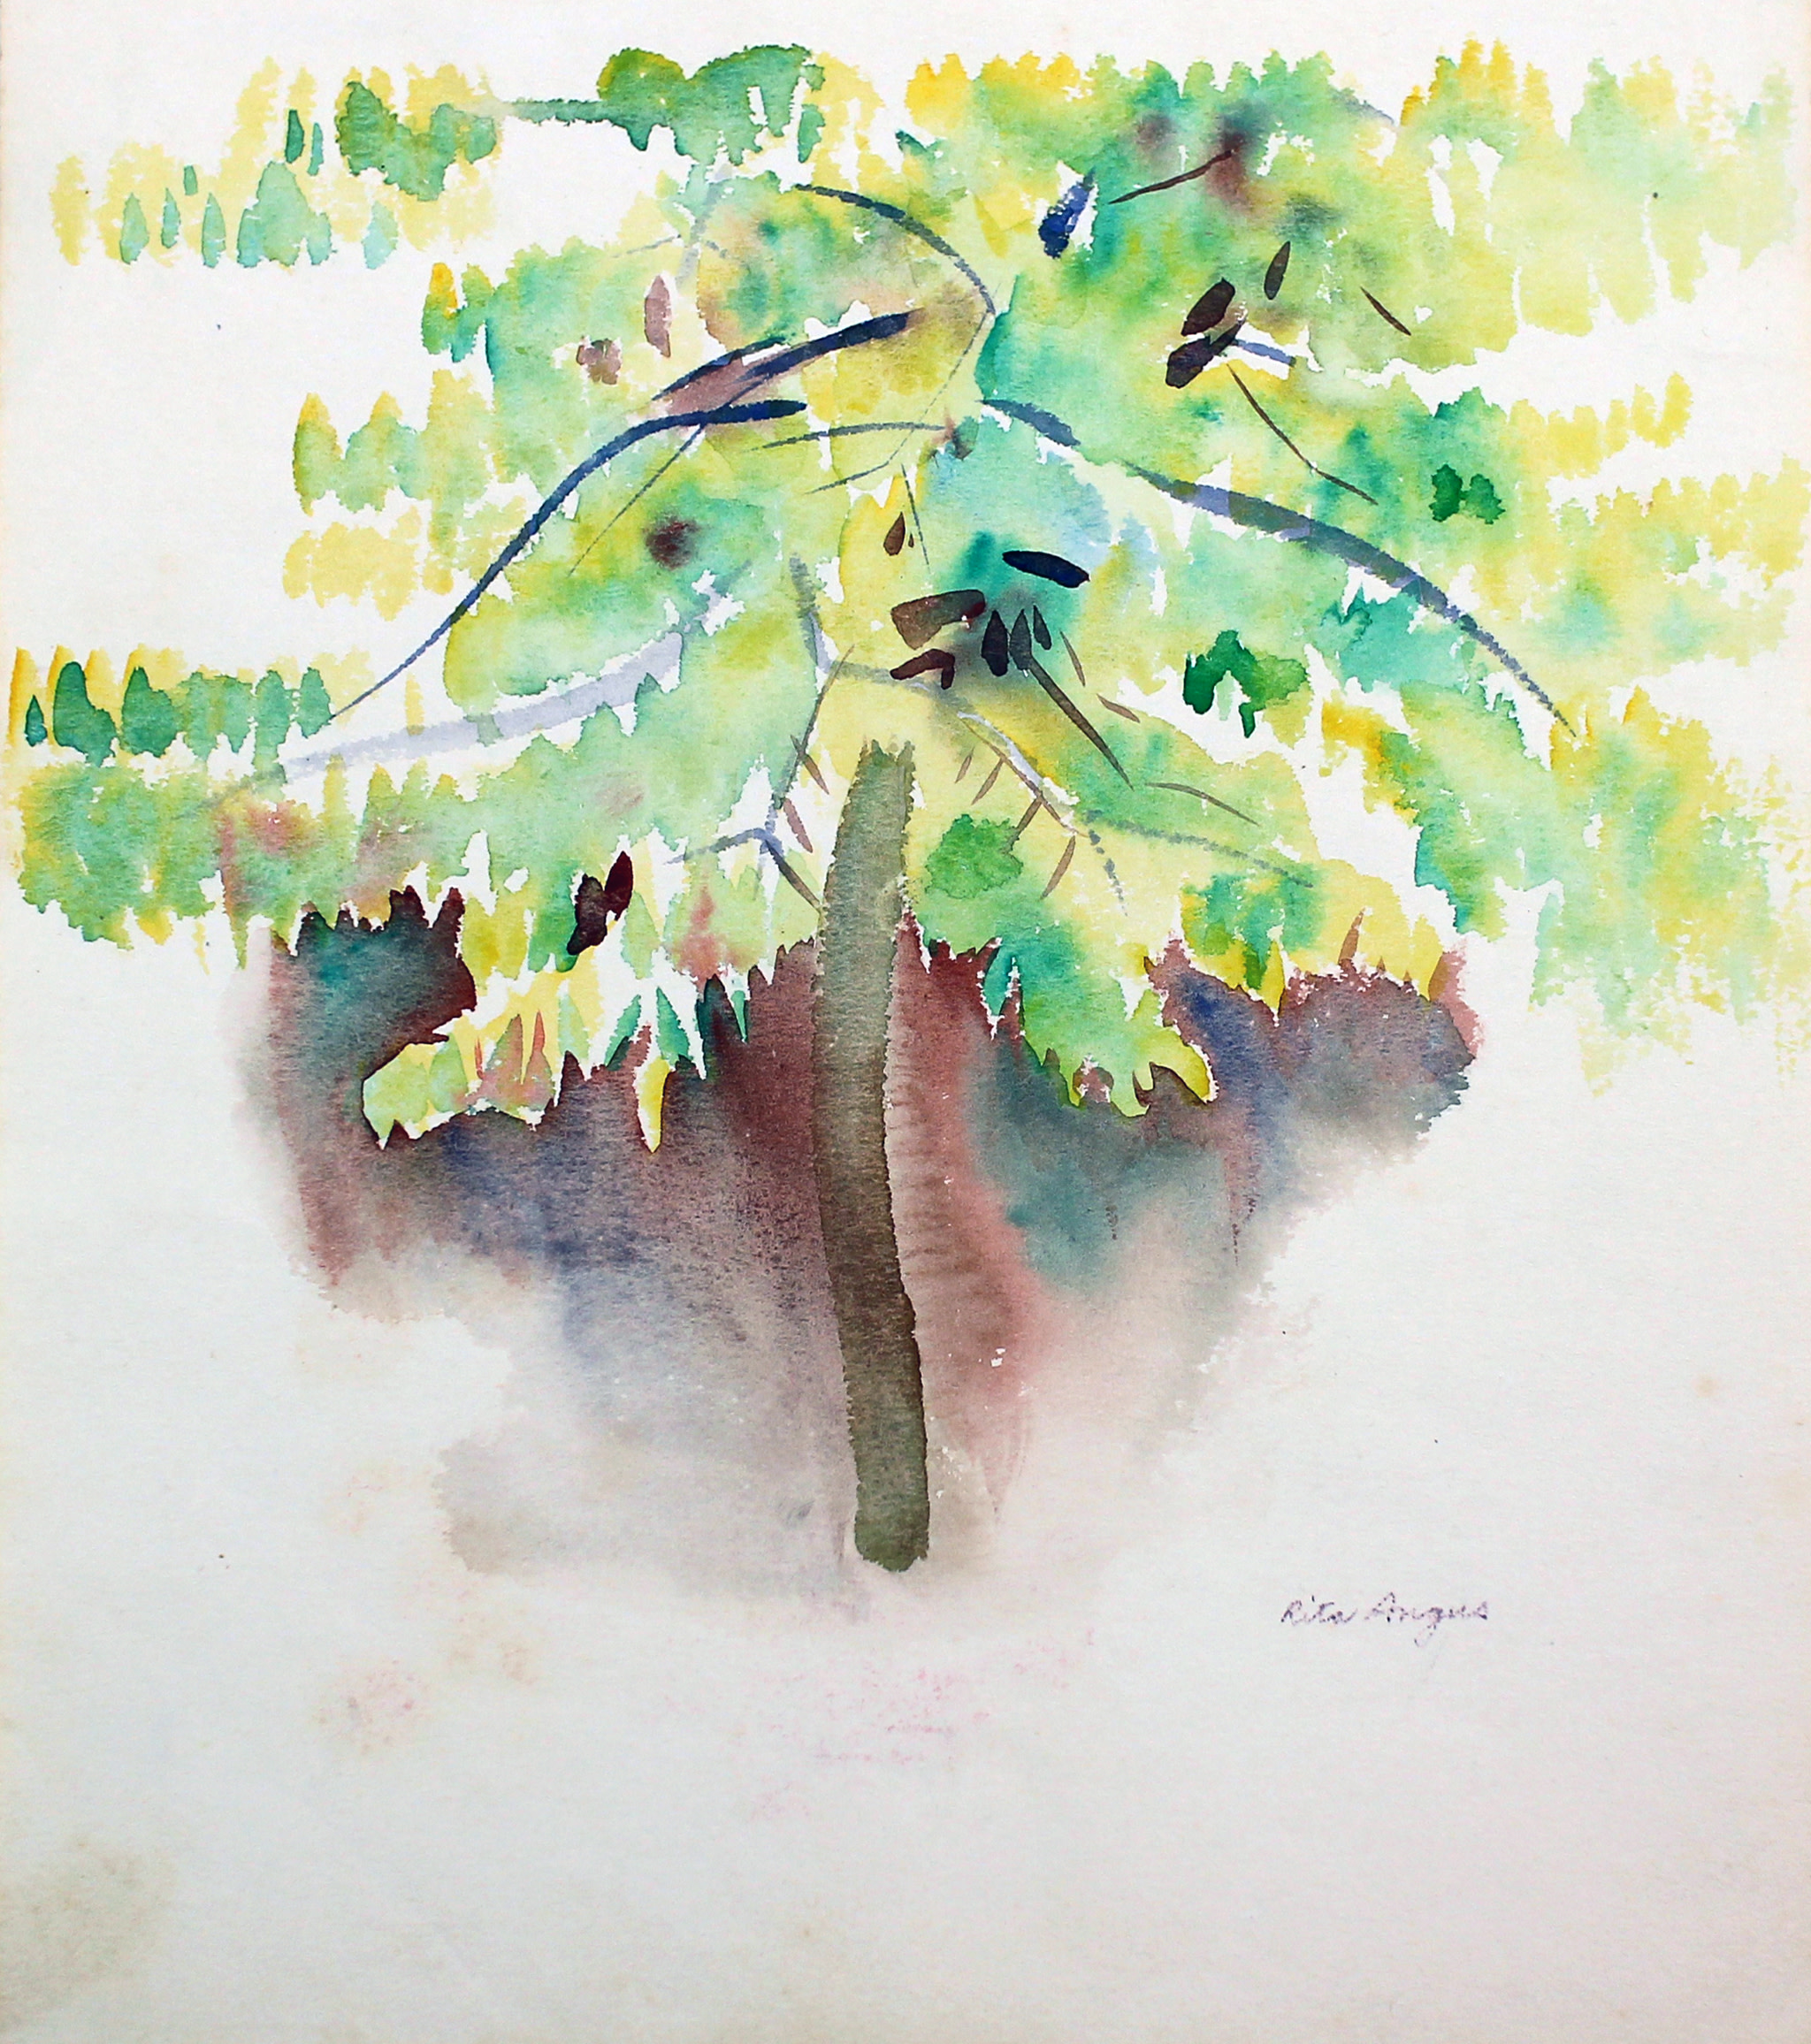 <span class=&#34;link fancybox-details-link&#34;><a href=&#34;/exhibitions/36/works/artworks6382/&#34;>View Detail Page</a></span><div class=&#34;medium&#34;>Watercolour on paper</div> <div class=&#34;dimensions&#34;>9.1 x 8.1 in<br />23.1 x 20.6 cm</div>